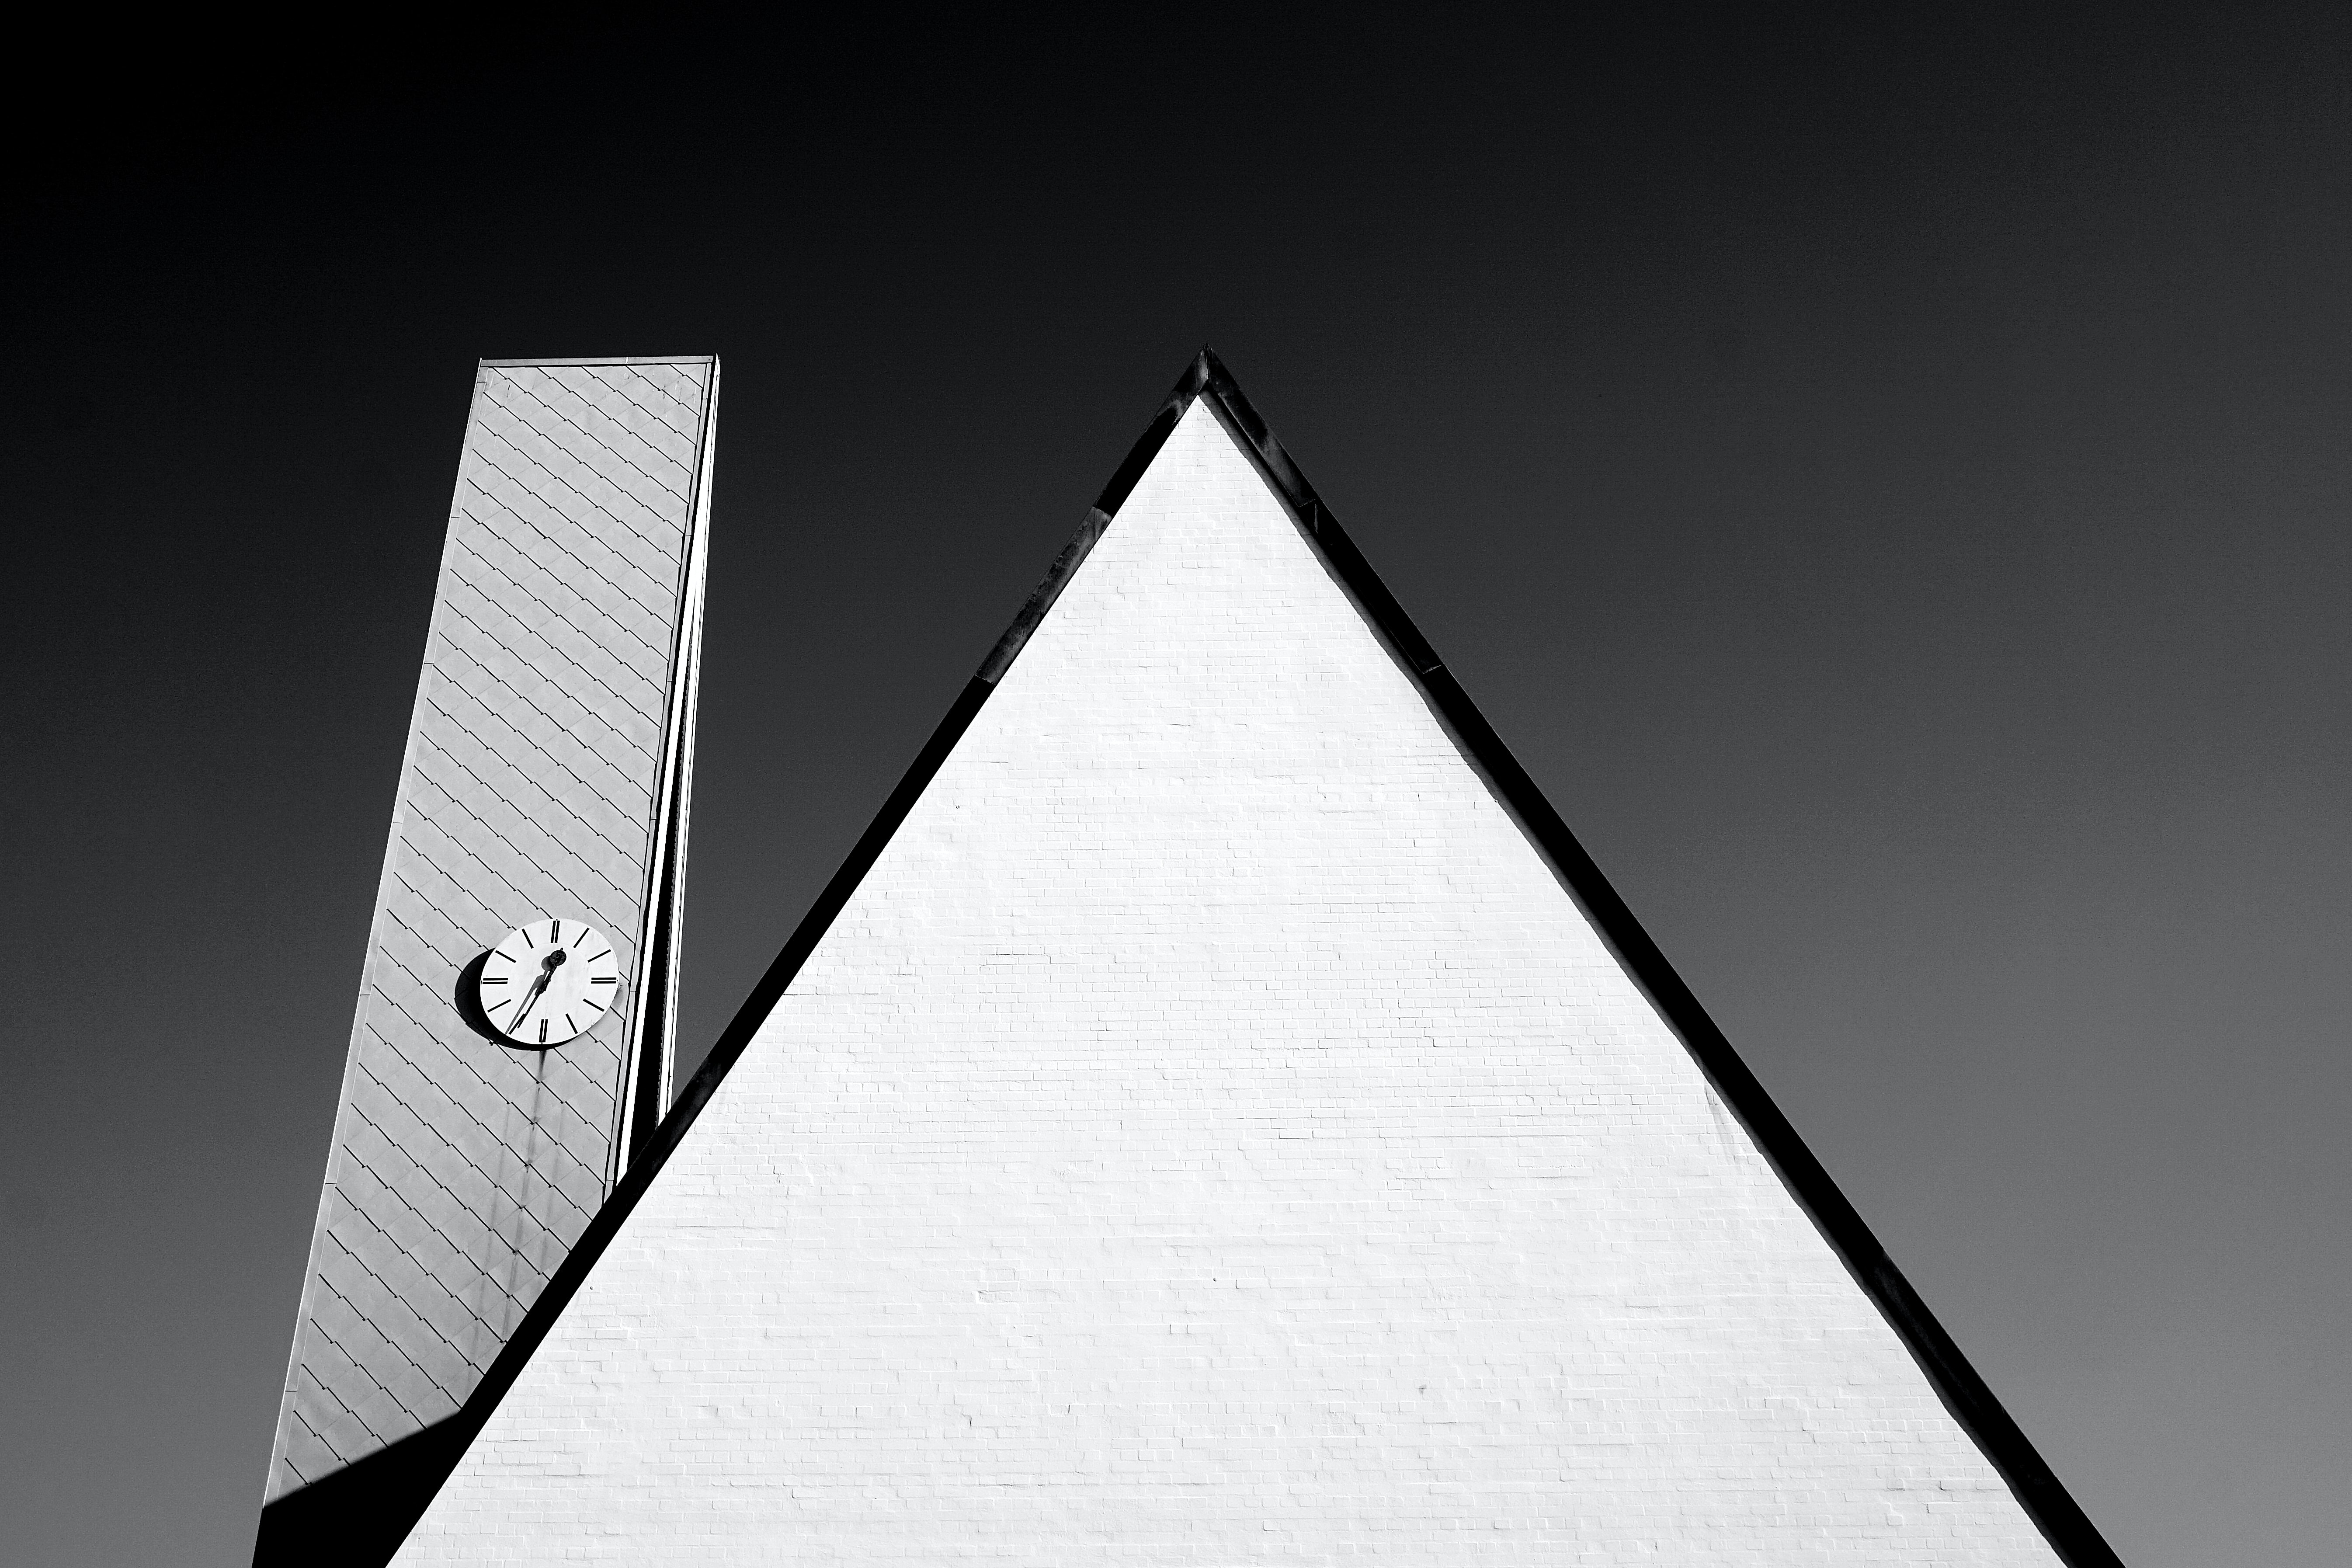 Abstract black and white shot of triangle and clock tower, Fürth, Bavaria, Germany